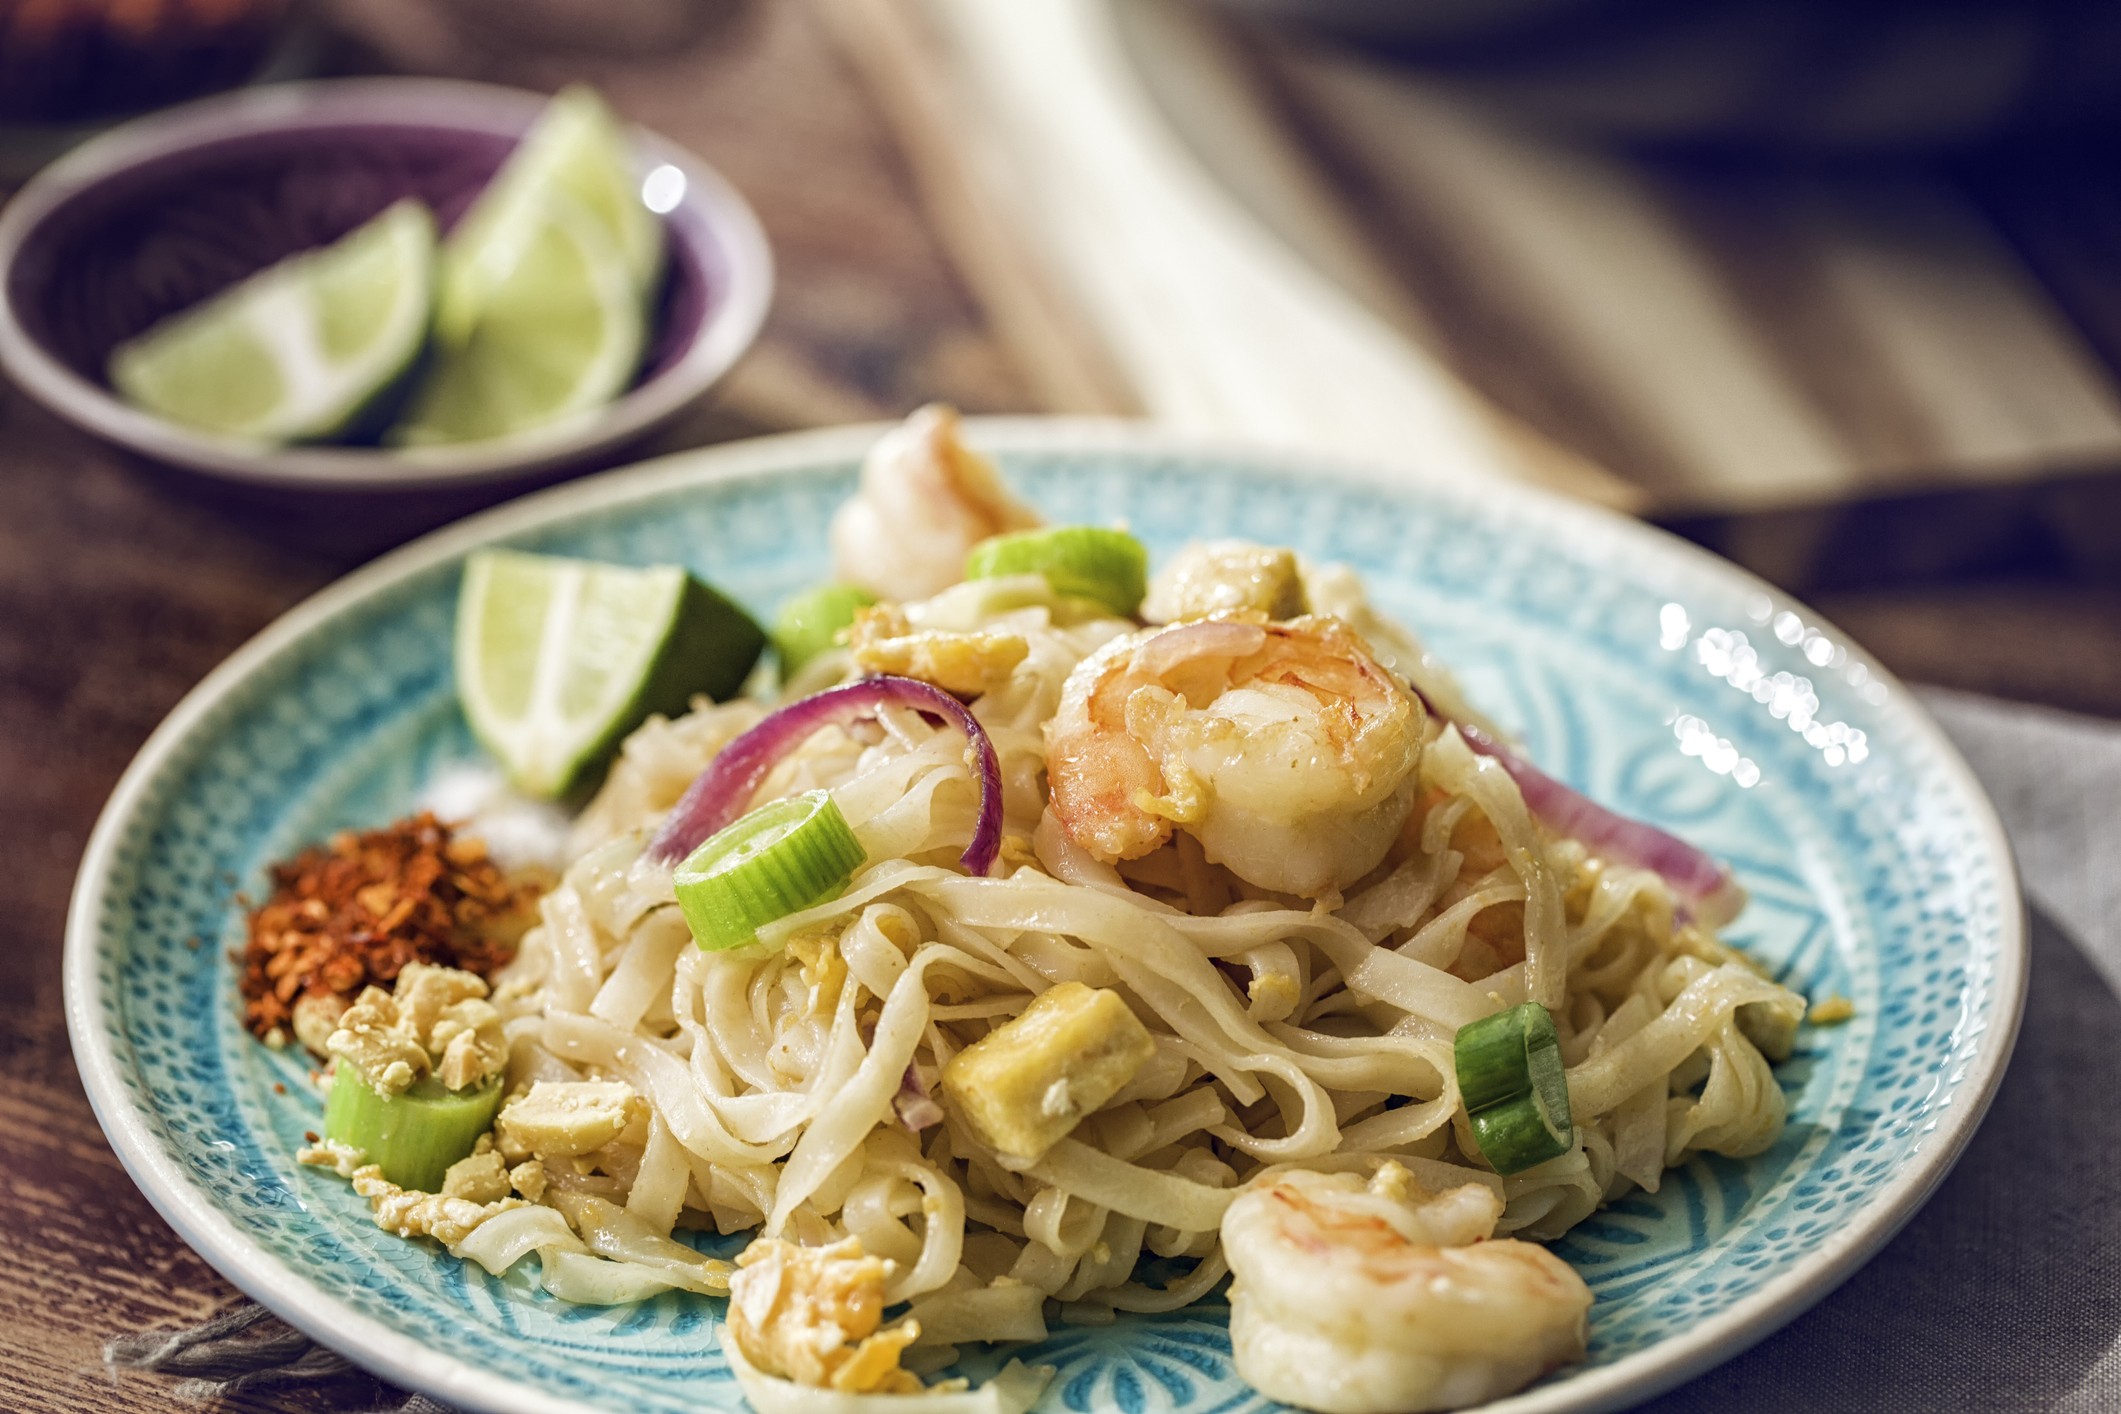 Thai noodles and shrimp